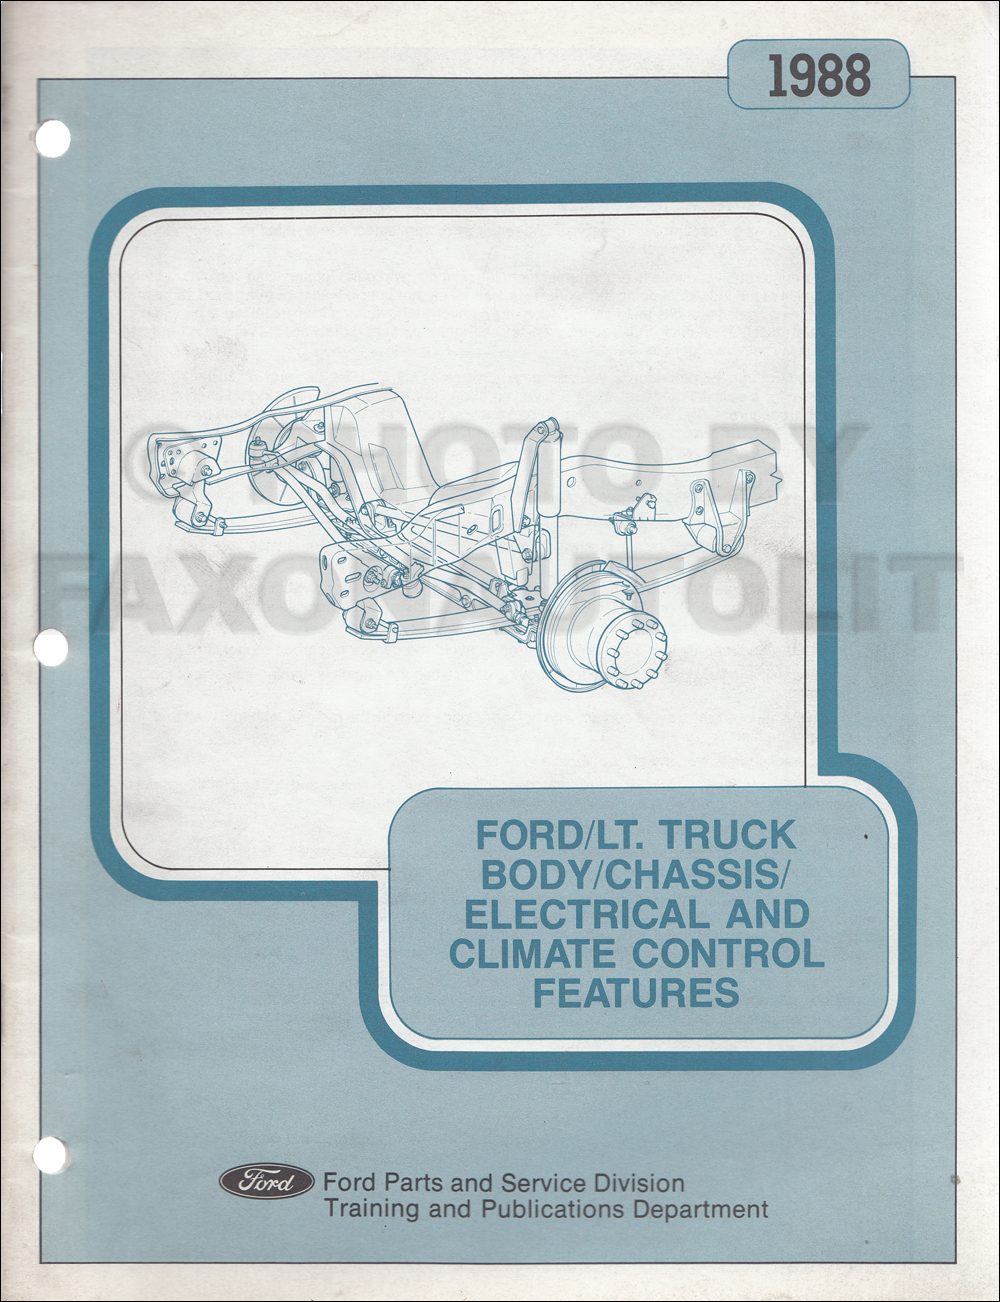 1988 Ford Brakes Suspension etc Service Training Manual